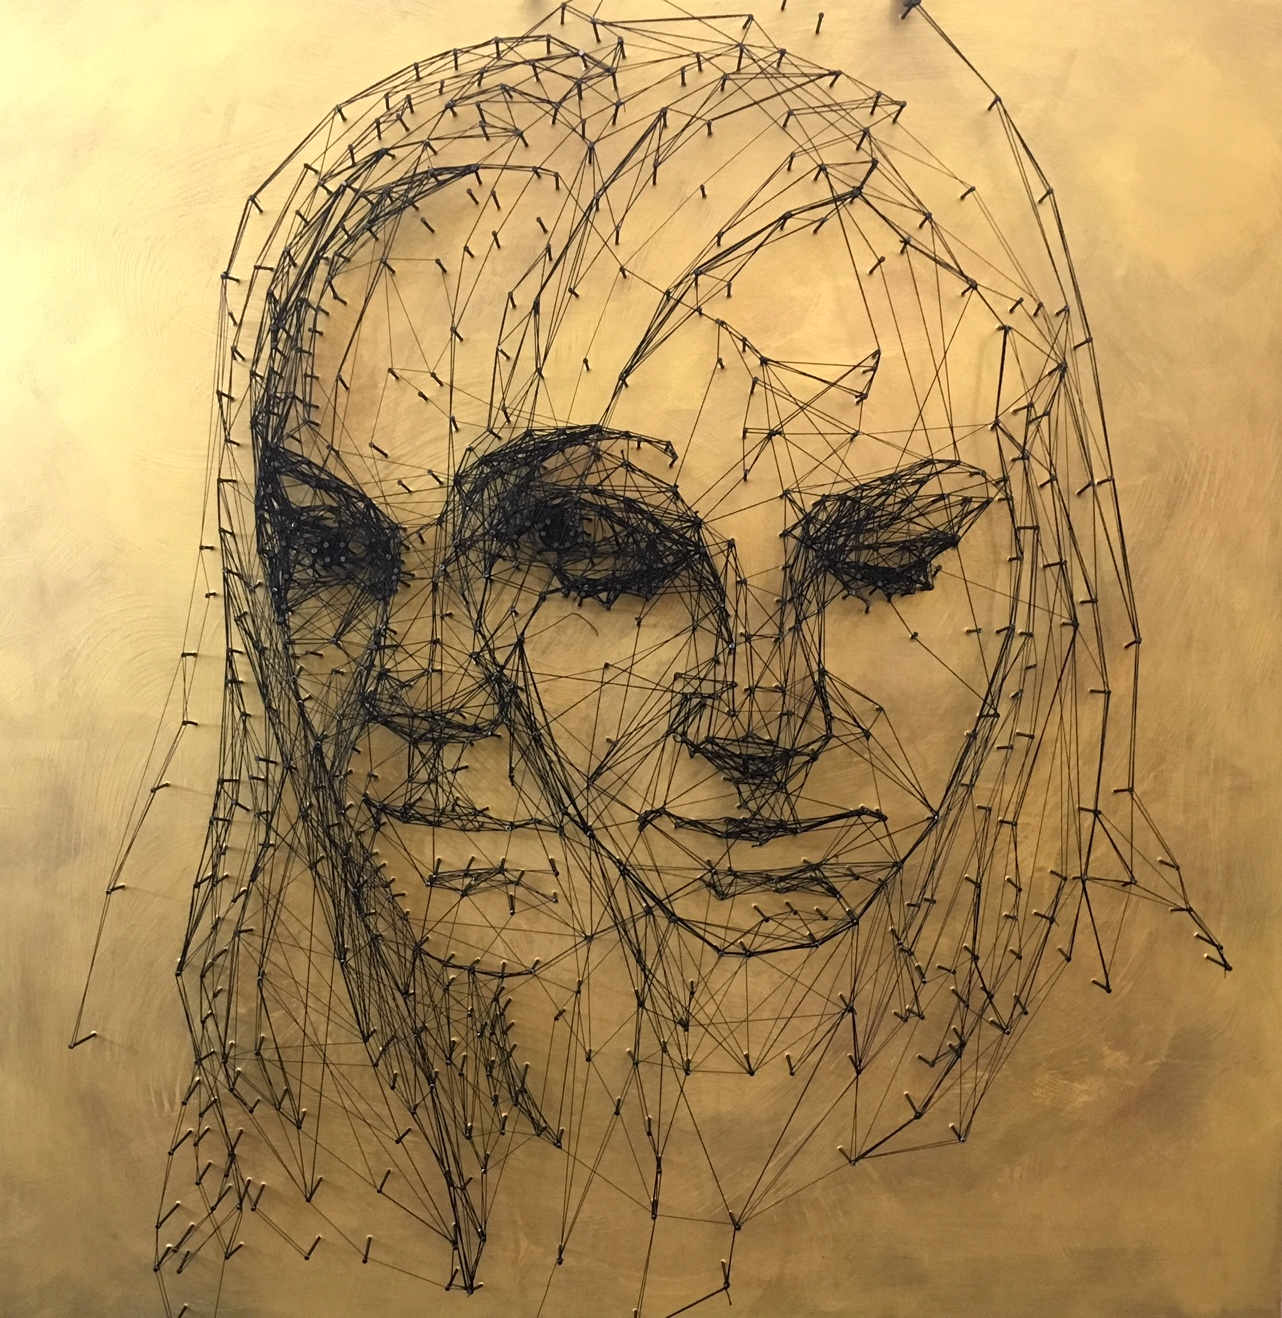 Nail and thread drawing on the wood board